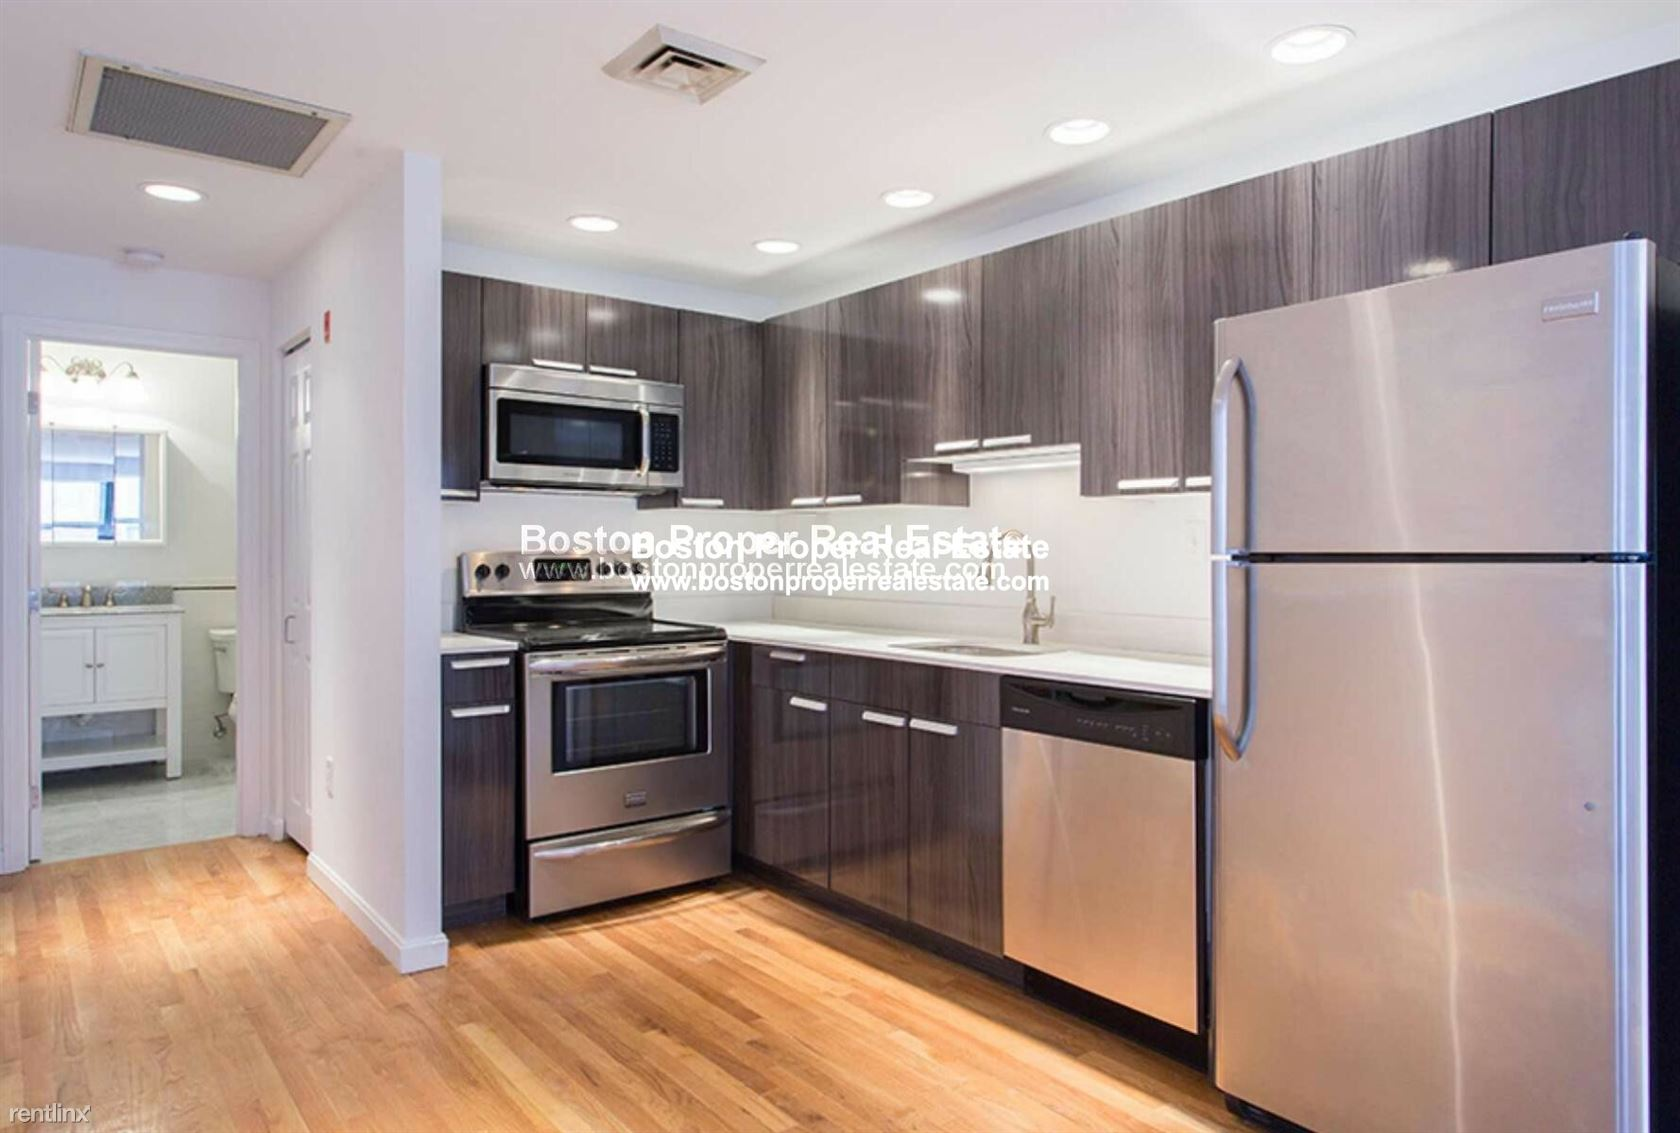 100 Jersey St Apt 206, Boston, MA - $2,975 USD/ month